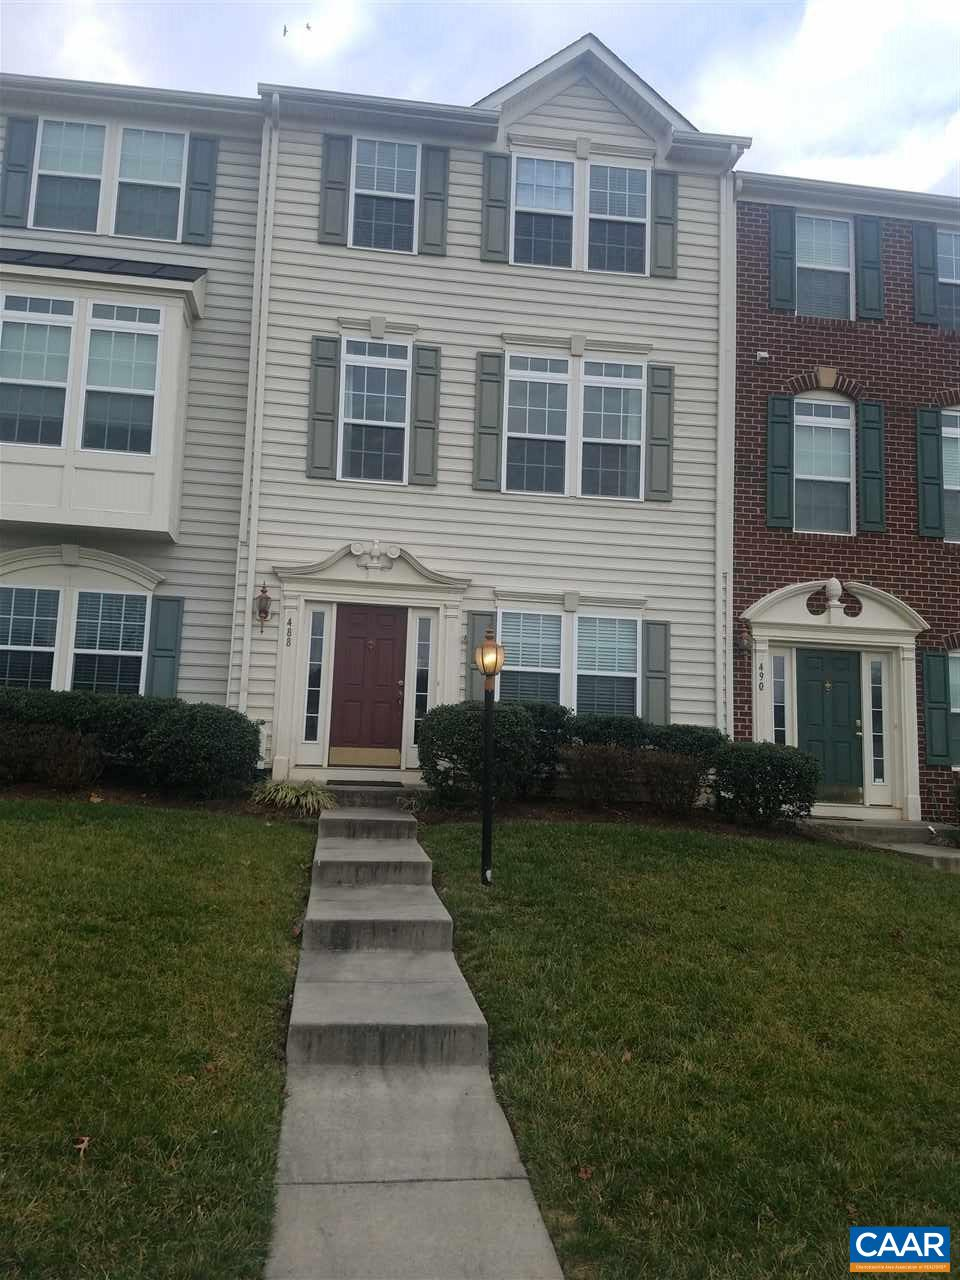 Pavilions at Pantops is perfectly located with easy access to I-64, UVA, and downtown Cville. Community features great sidewalks, play areas, great views, trash service, and yard service. This 3 bedroom 3 full bath townhouse is ready to move in! The main living area has an open concept with the kitchen, dining and living rooms all connected and open. The upstairs has 2 large bedrooms and 2 full baths, featuring a large master bedroom with cathedral ceiling and full bath with a double vanity sink and garden tub with separate shower. The first level is finished with a den (with a gas log fireplace), a bedroom or office and another full bath. Also features a private back yard. This townhouse has so much to offer at this perfect location!